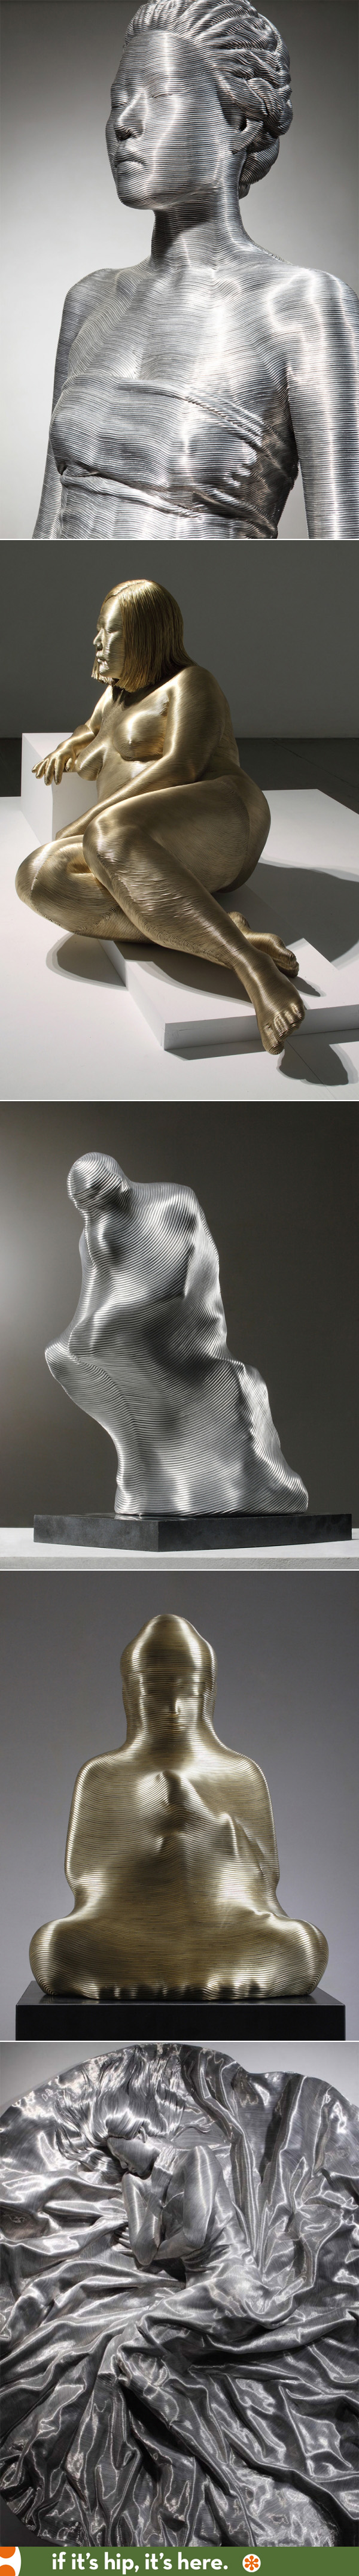 The wire-wrapped sculptures by Park SeungMo are amazing.